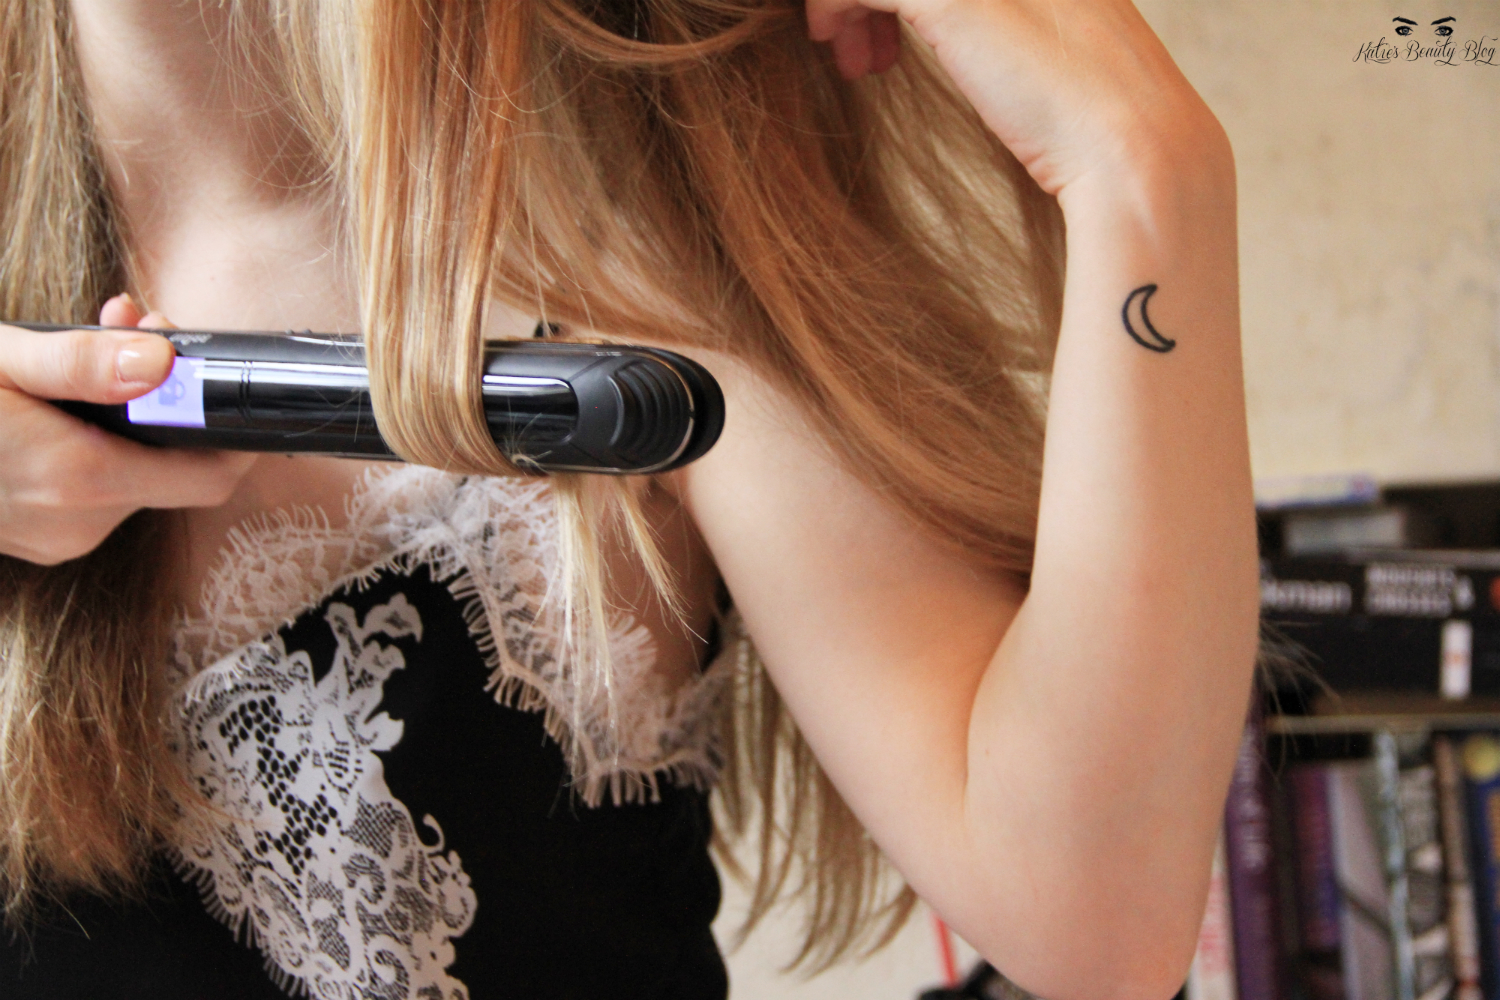 Review Hair Styles With Braun Katie Snooks